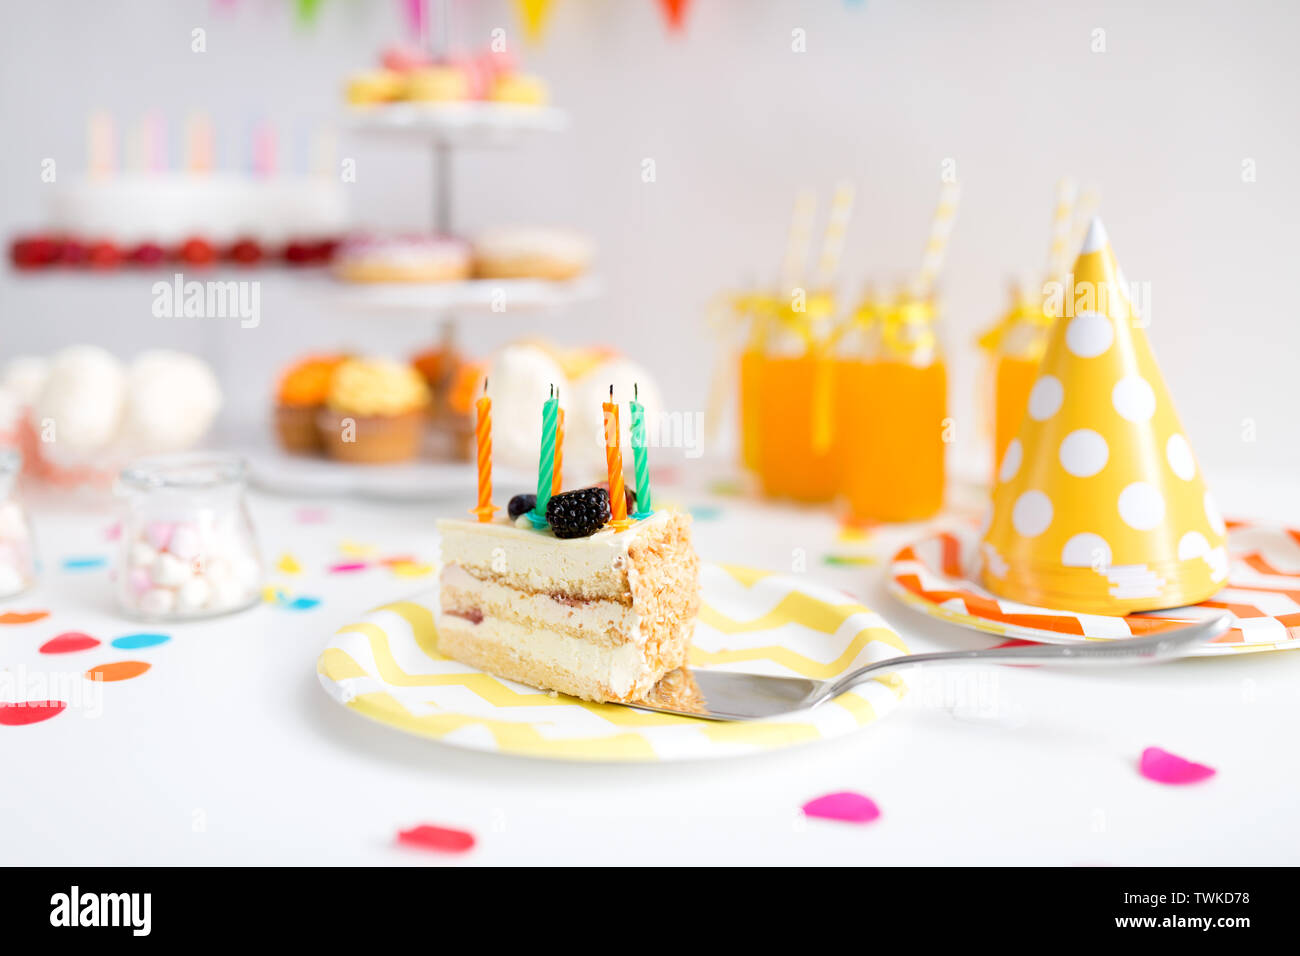 piece of cake on plate at birthday party - Stock Image